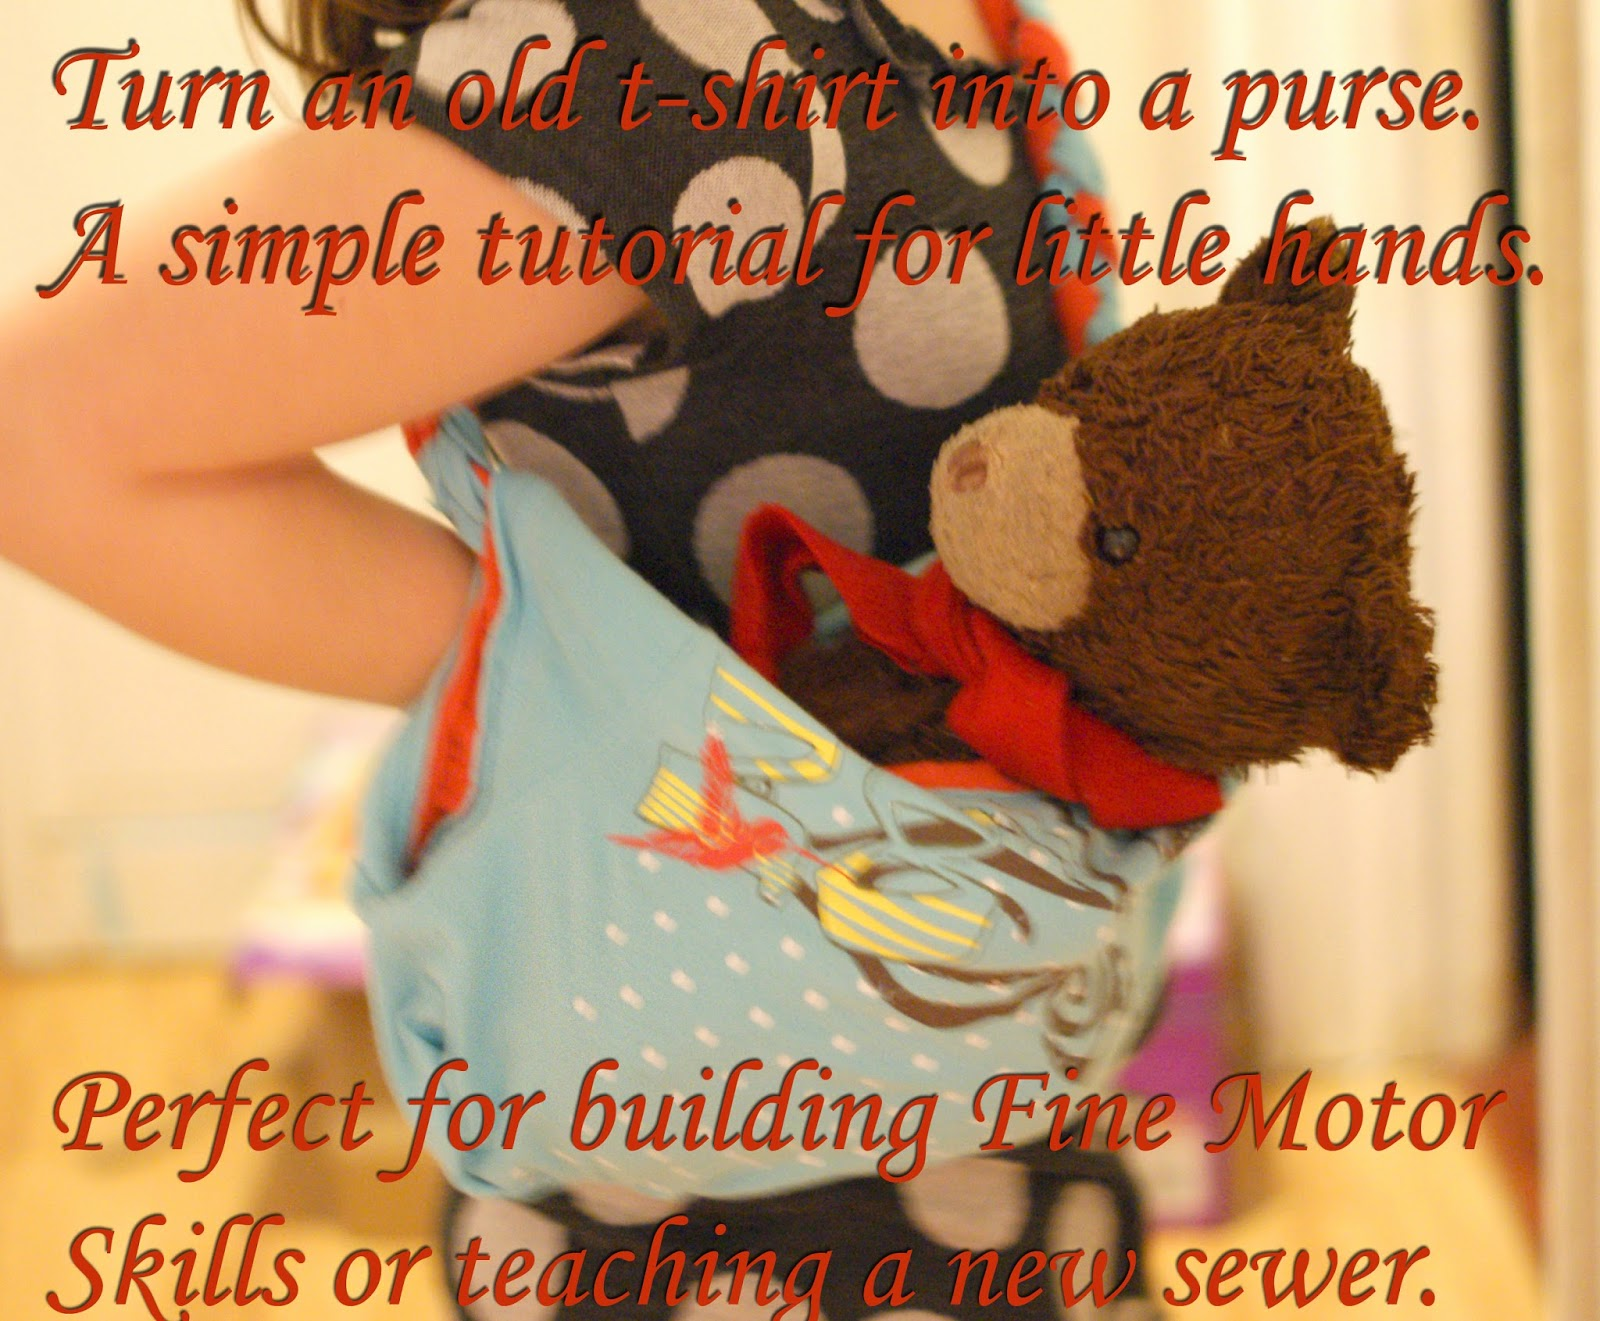 Turn a T-shirt into a purse. A Simple craft for kids to learn fine motor skills